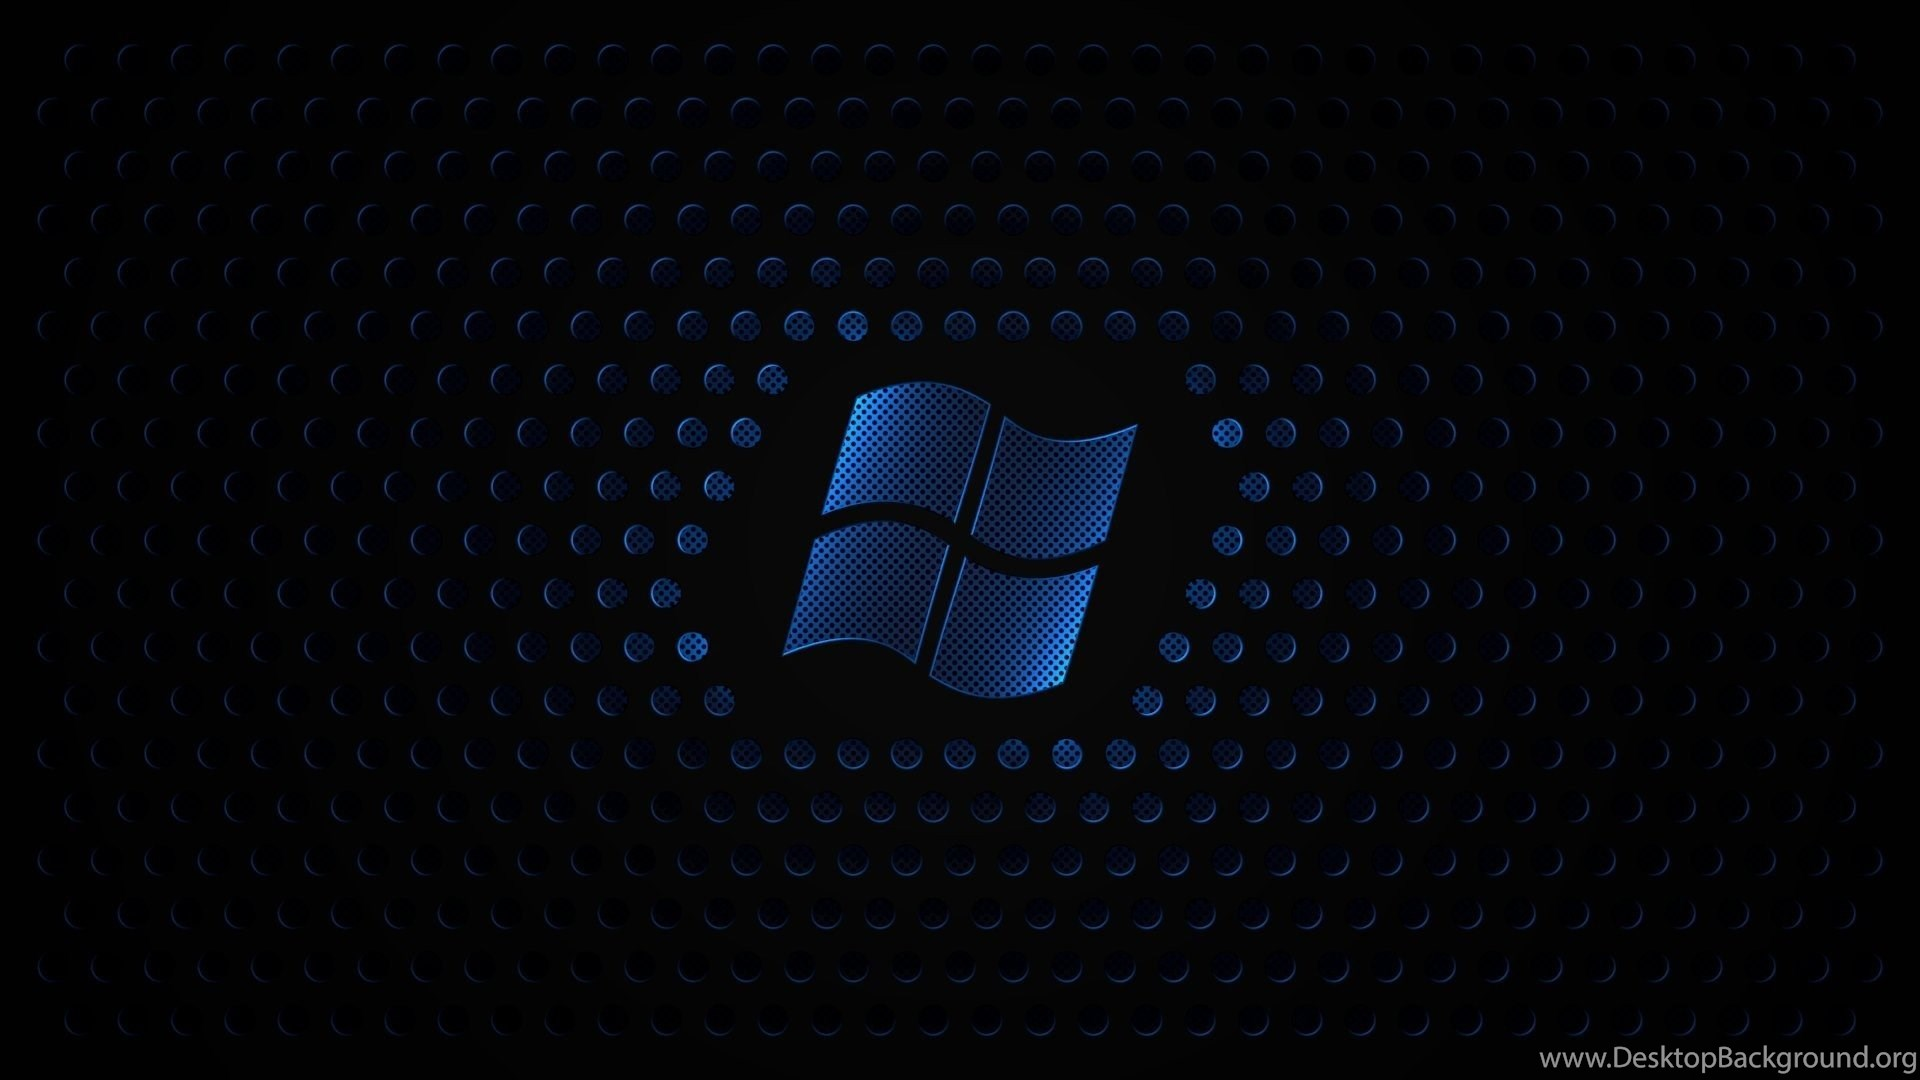 windows 7 ultimate wallpapers » walldevil best free hd desktop